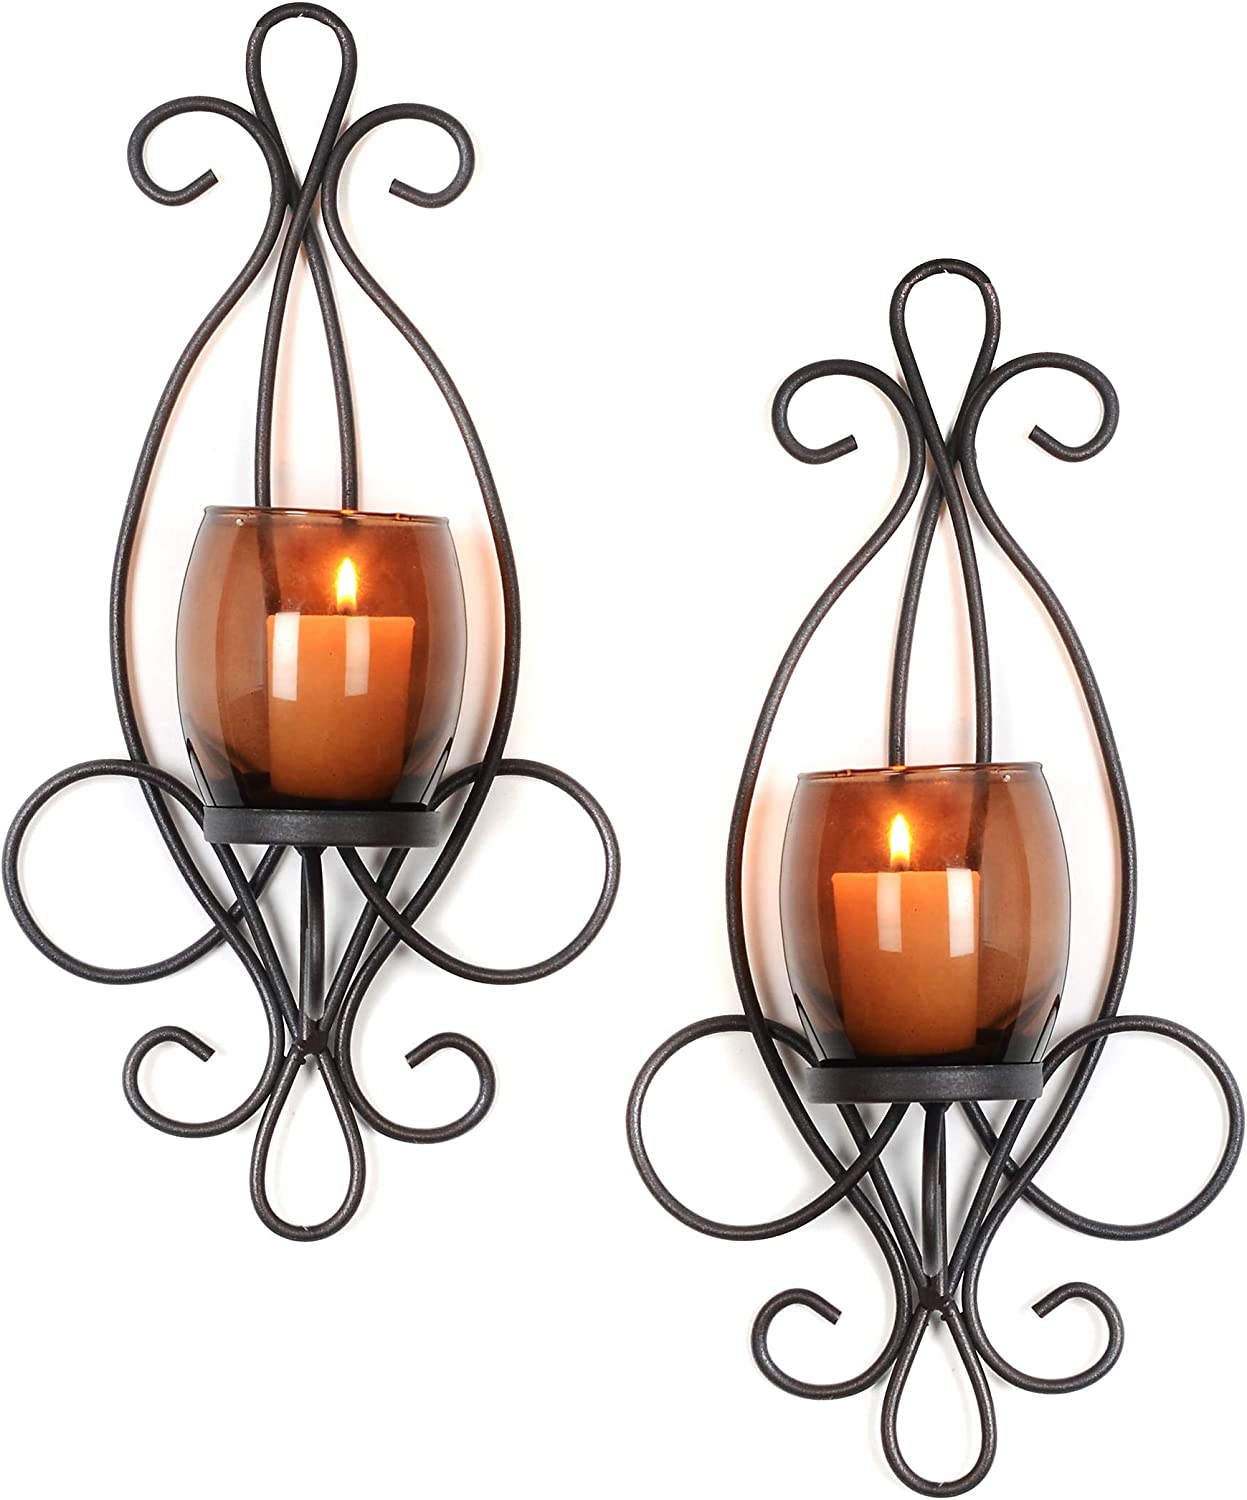 Set of 2 Enchanting Antique Style Metal Sconce Amber Clear Wall Mounted Votive Candle Holder Amber